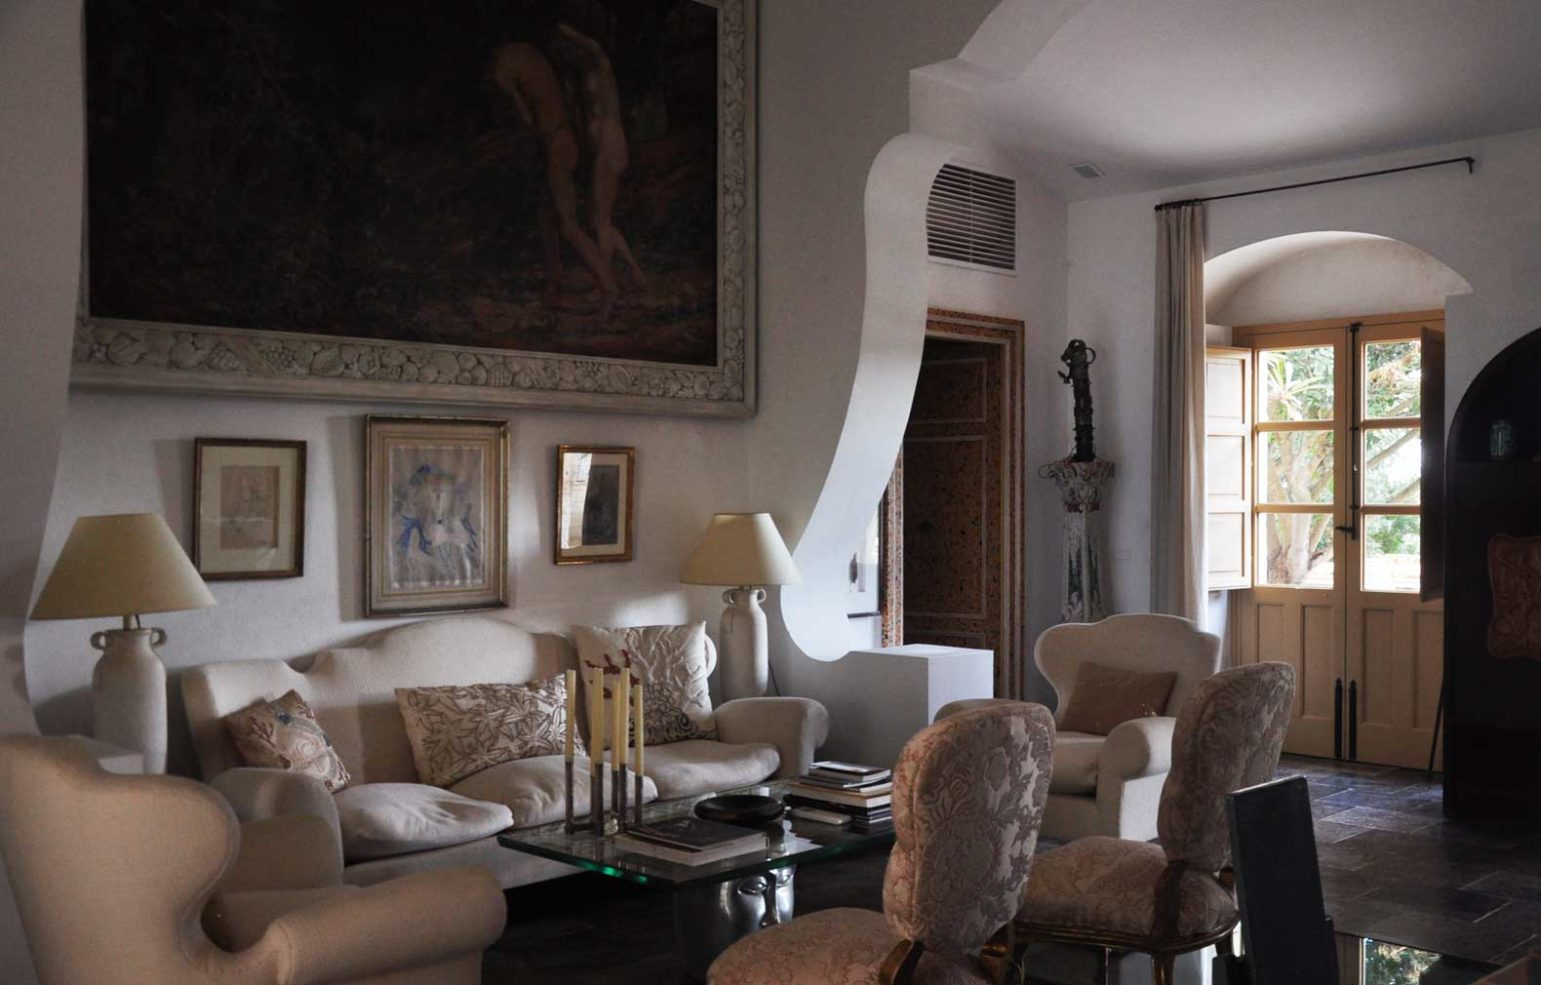 Maison des Oliviers living room is fulled with antiques